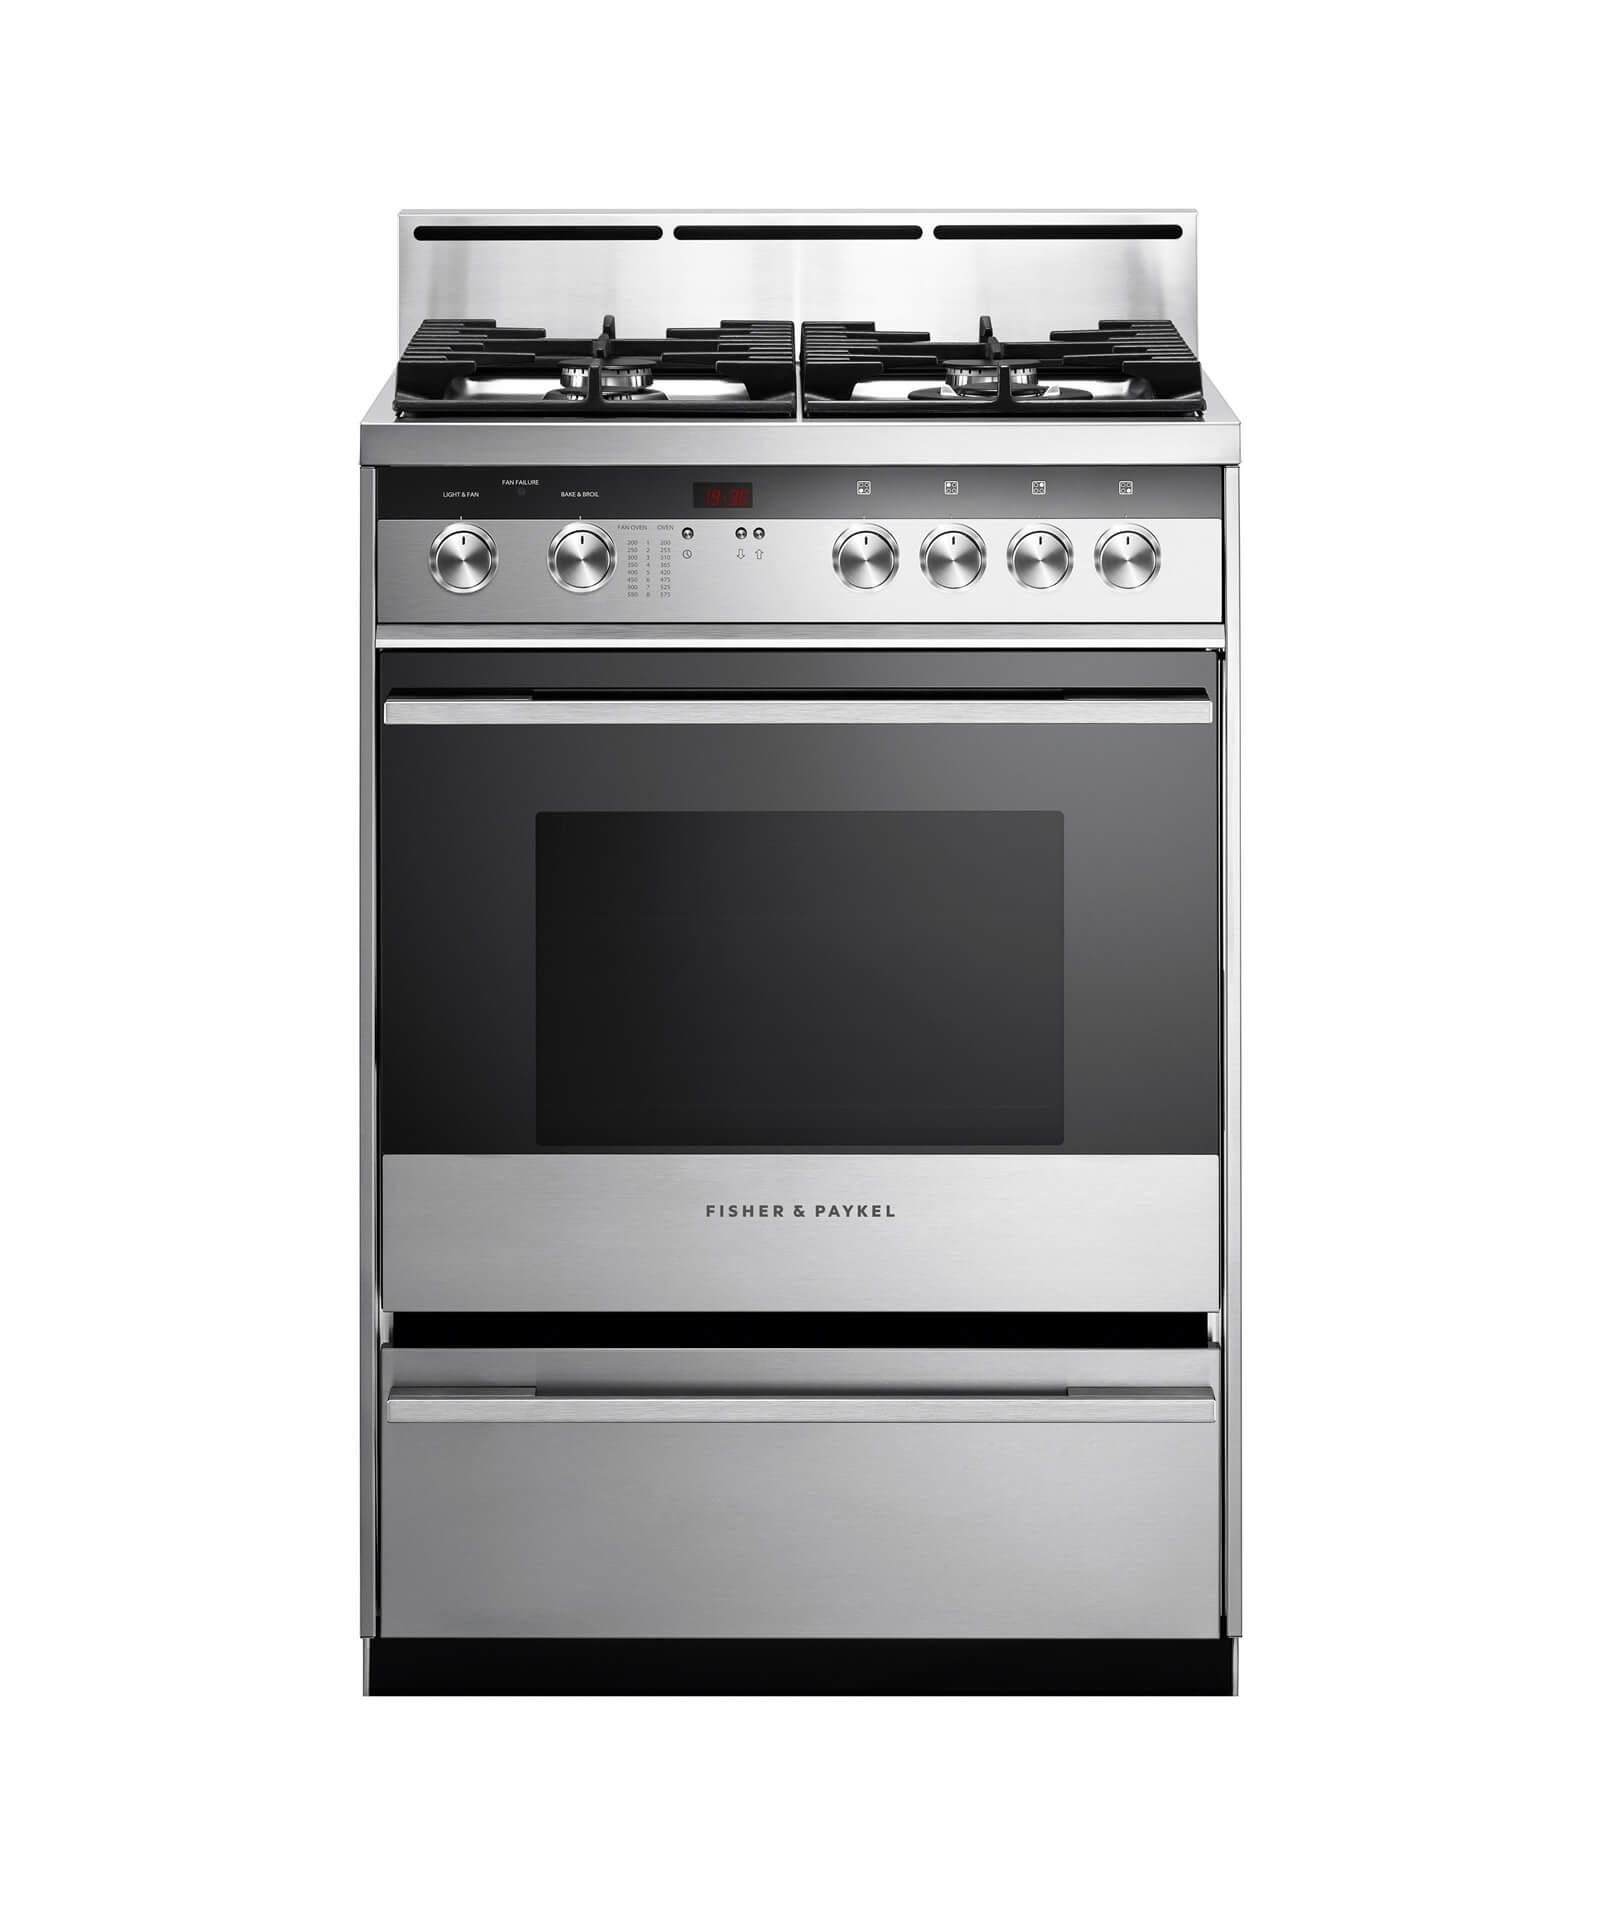 Free Dishwasher With Purchase Of A Range Plus 5 Rebate Voss Tv Appliance Appliances Consumer Electronics And Furniture